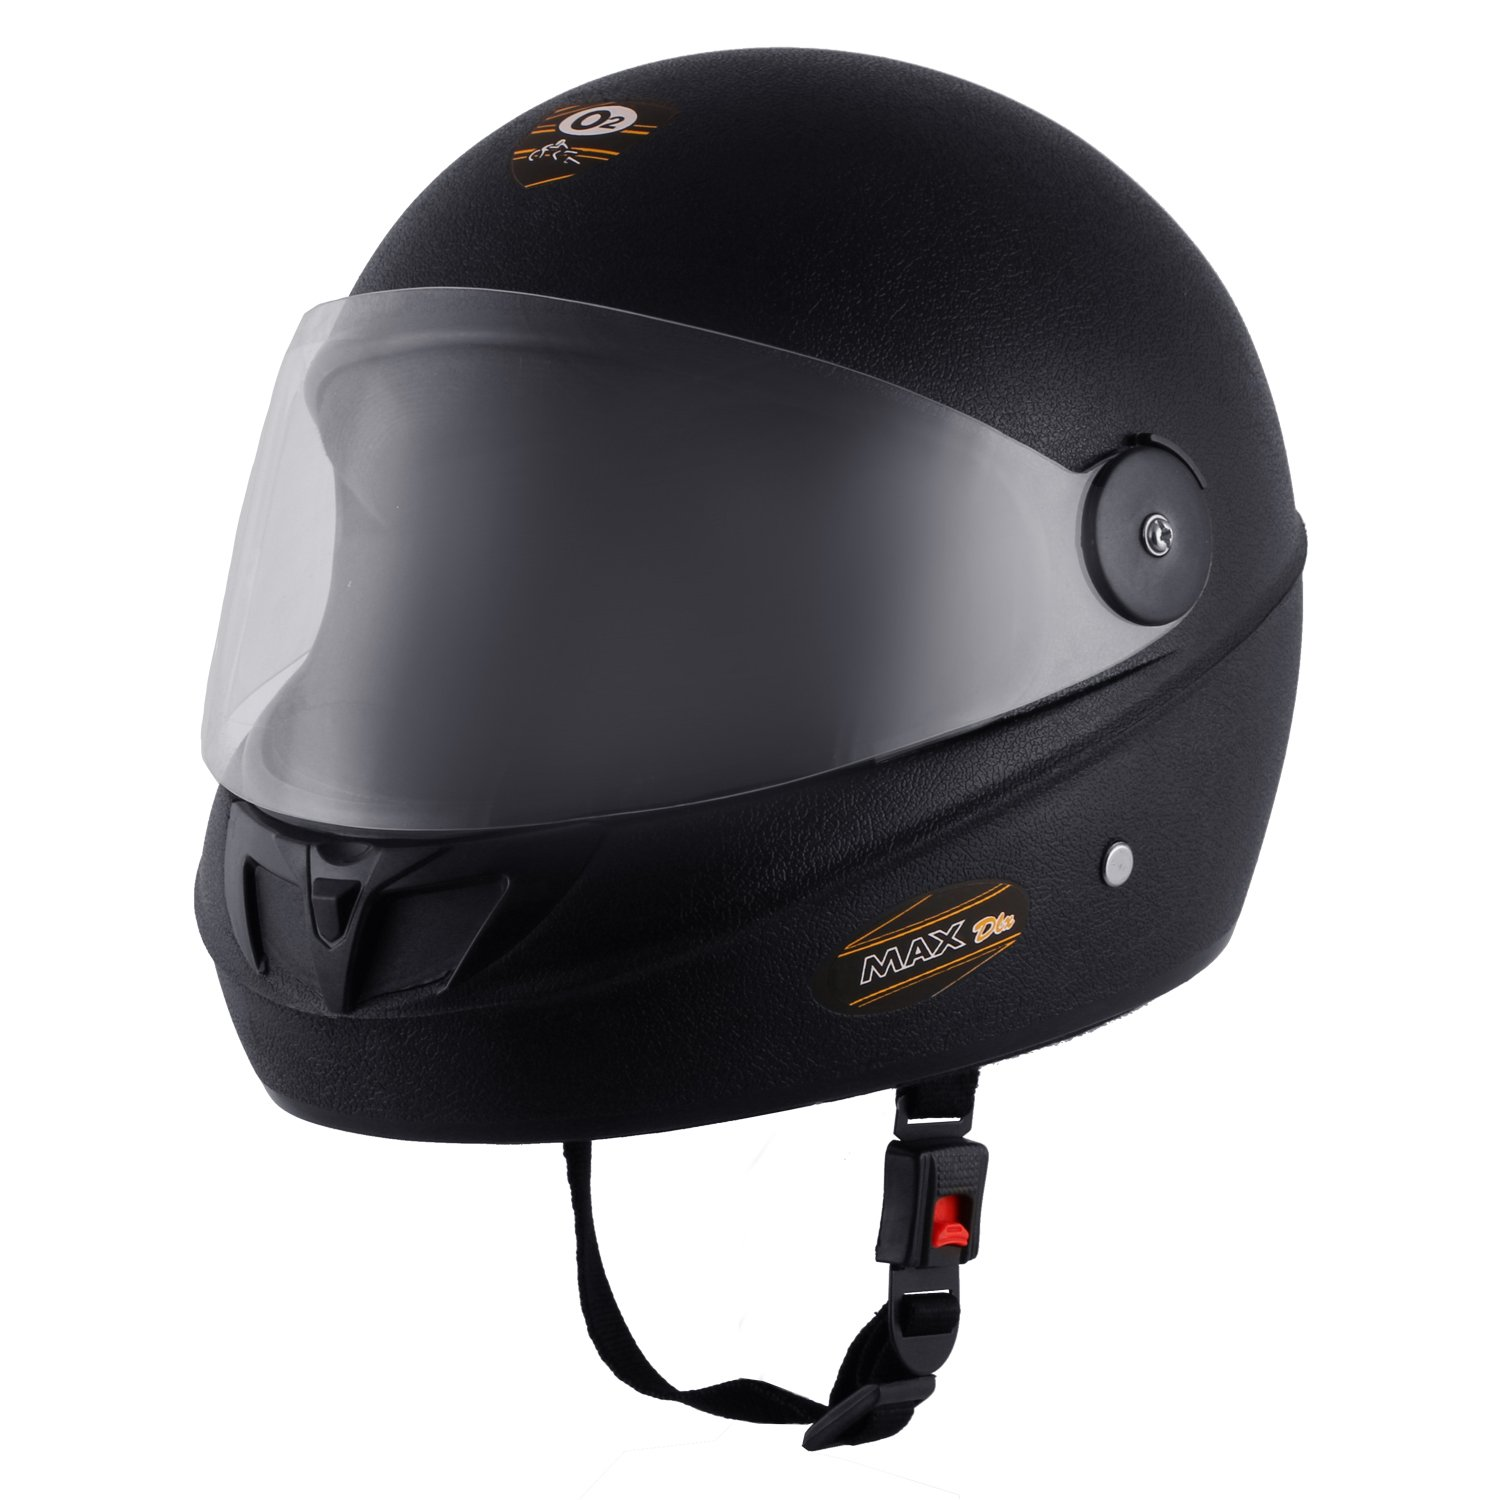 8eea67e0 O2 Max DLX Full Face Helmet With Scratch Resistant Visor (Matte Black,M)